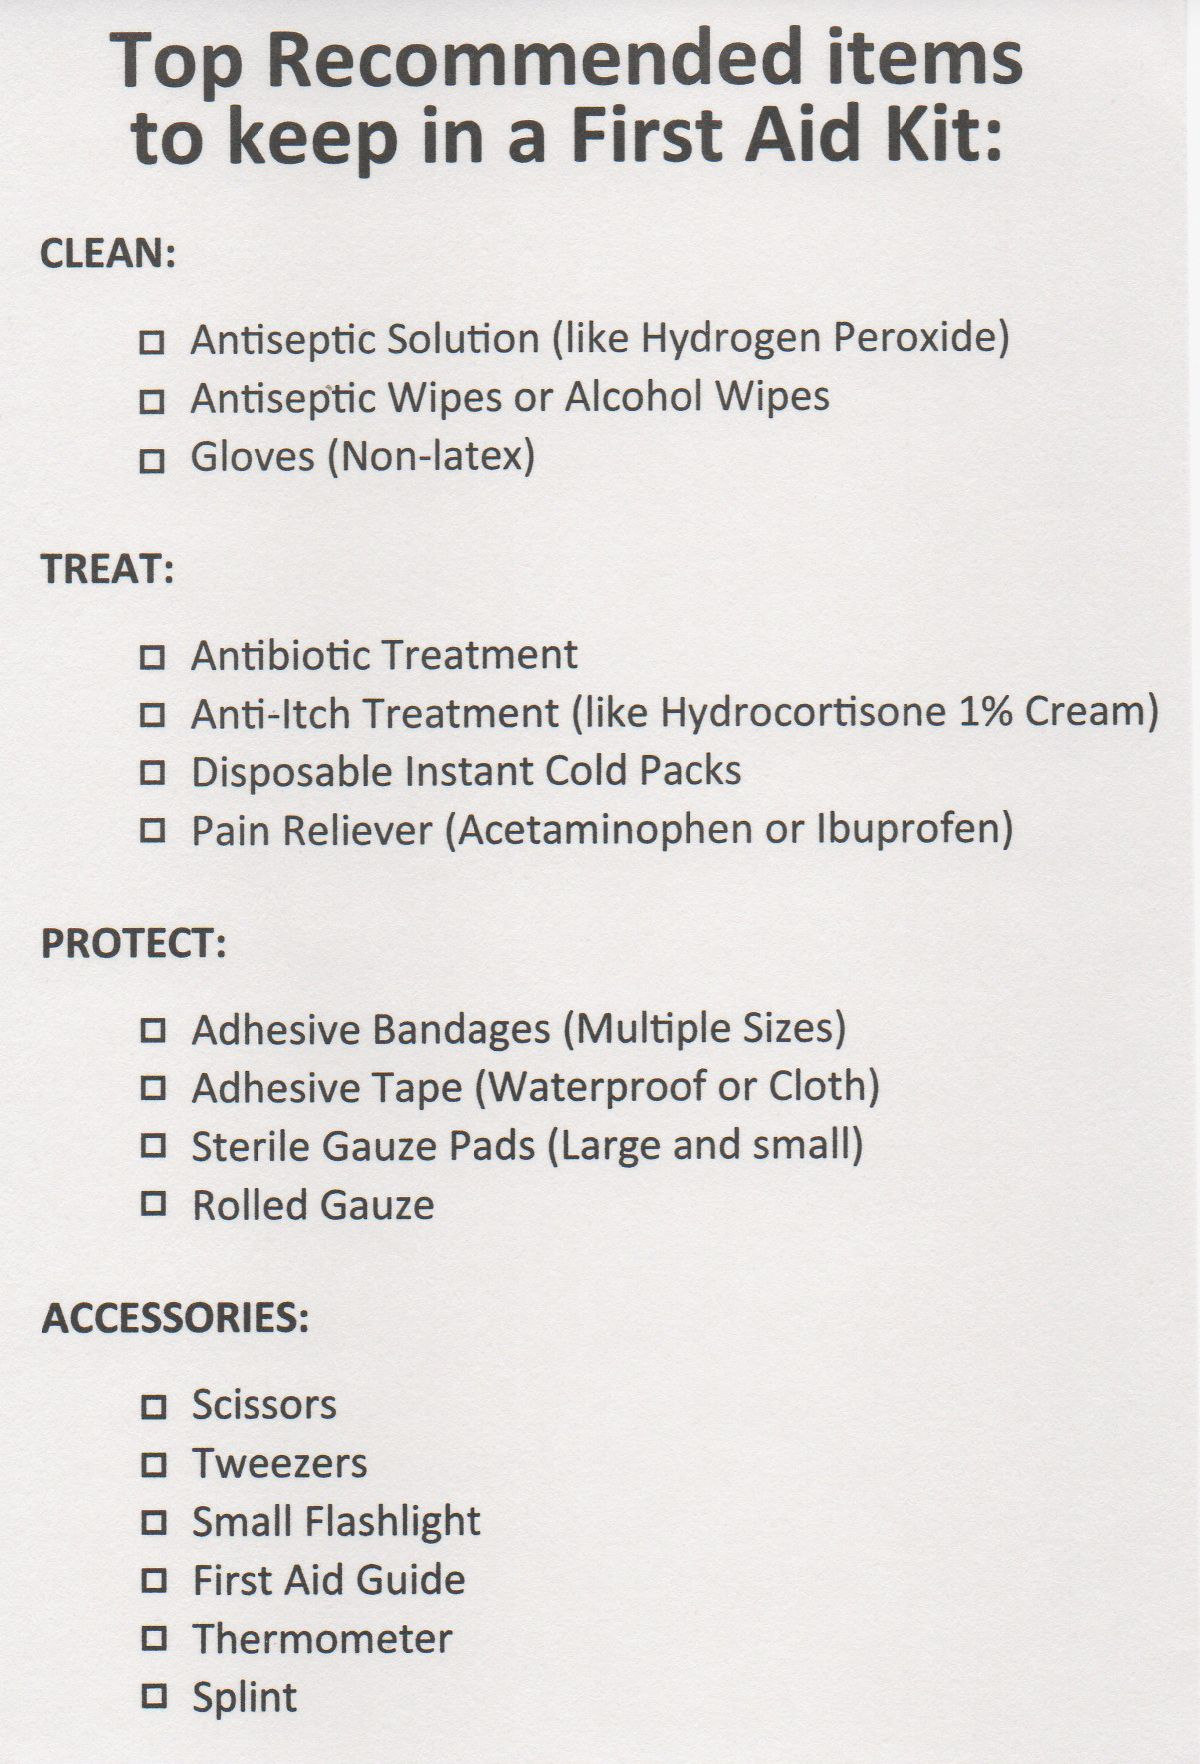 Worksheets First Aid Worksheets a printable checklist for the top recommended items to keep in first aid kit